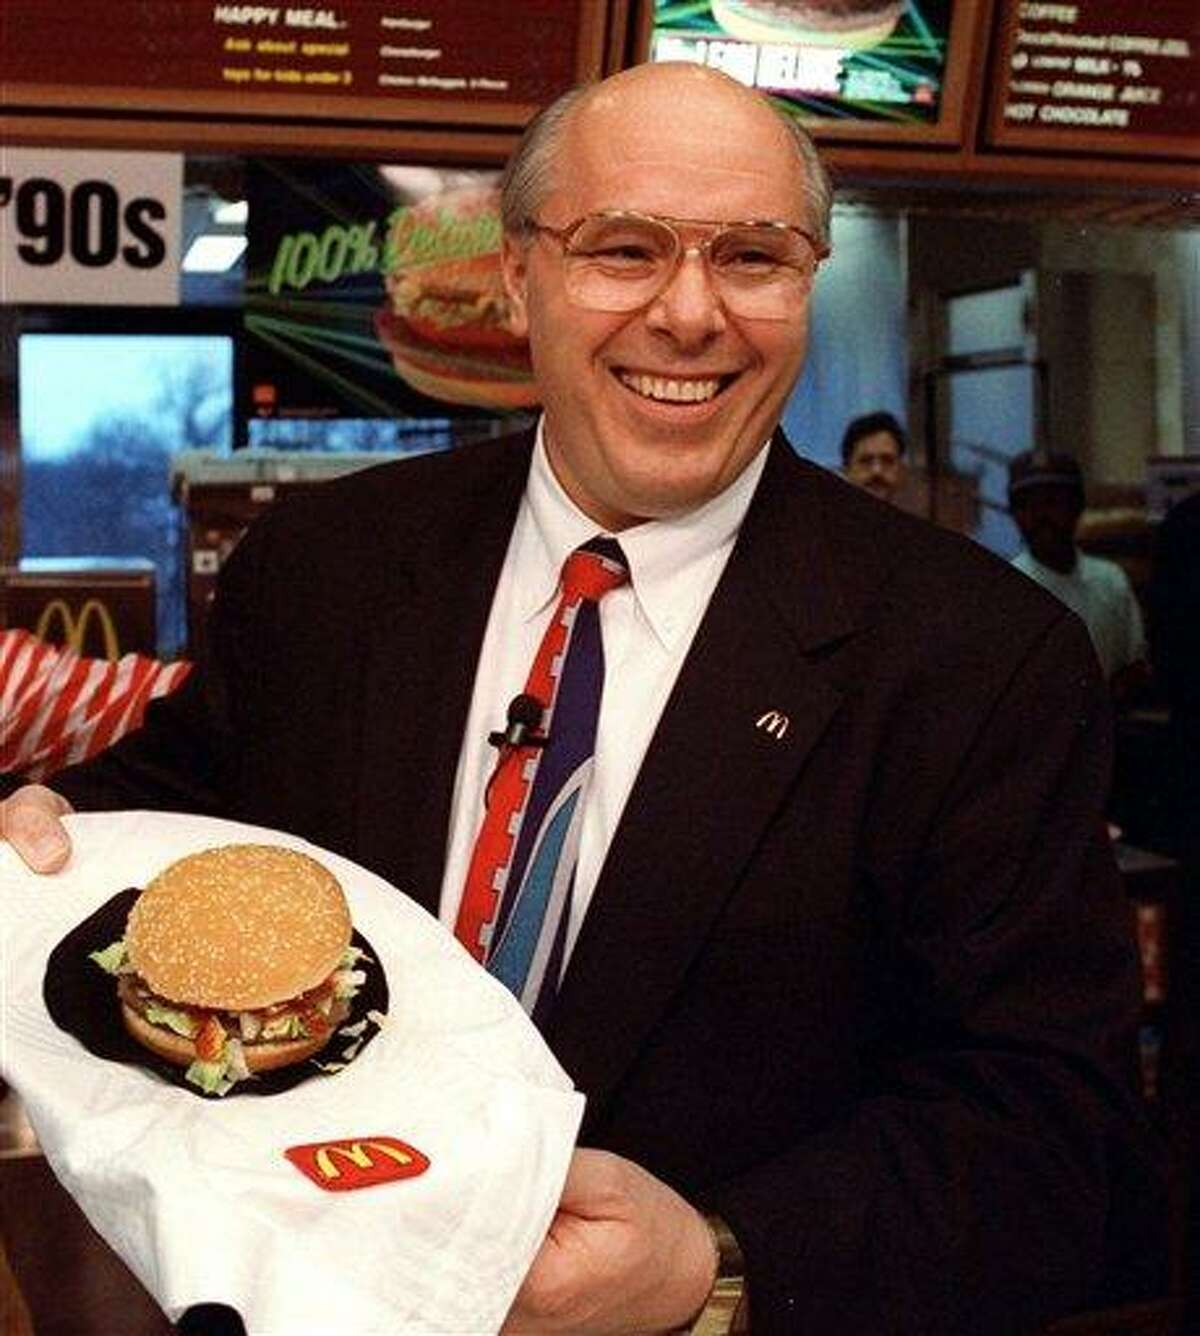 FILE - In this file photo of March 13, 1991, (then) McDonald's Corp. President Ed Rensi shows off the McLean Deluxe Burger during a news conference at the company's Oak Brook, Ill., headquarters. The lower fat hamburger made with seaweed derivative never really caught on with customers. (AP Photo/Ralf-Finn Hestoft, File)